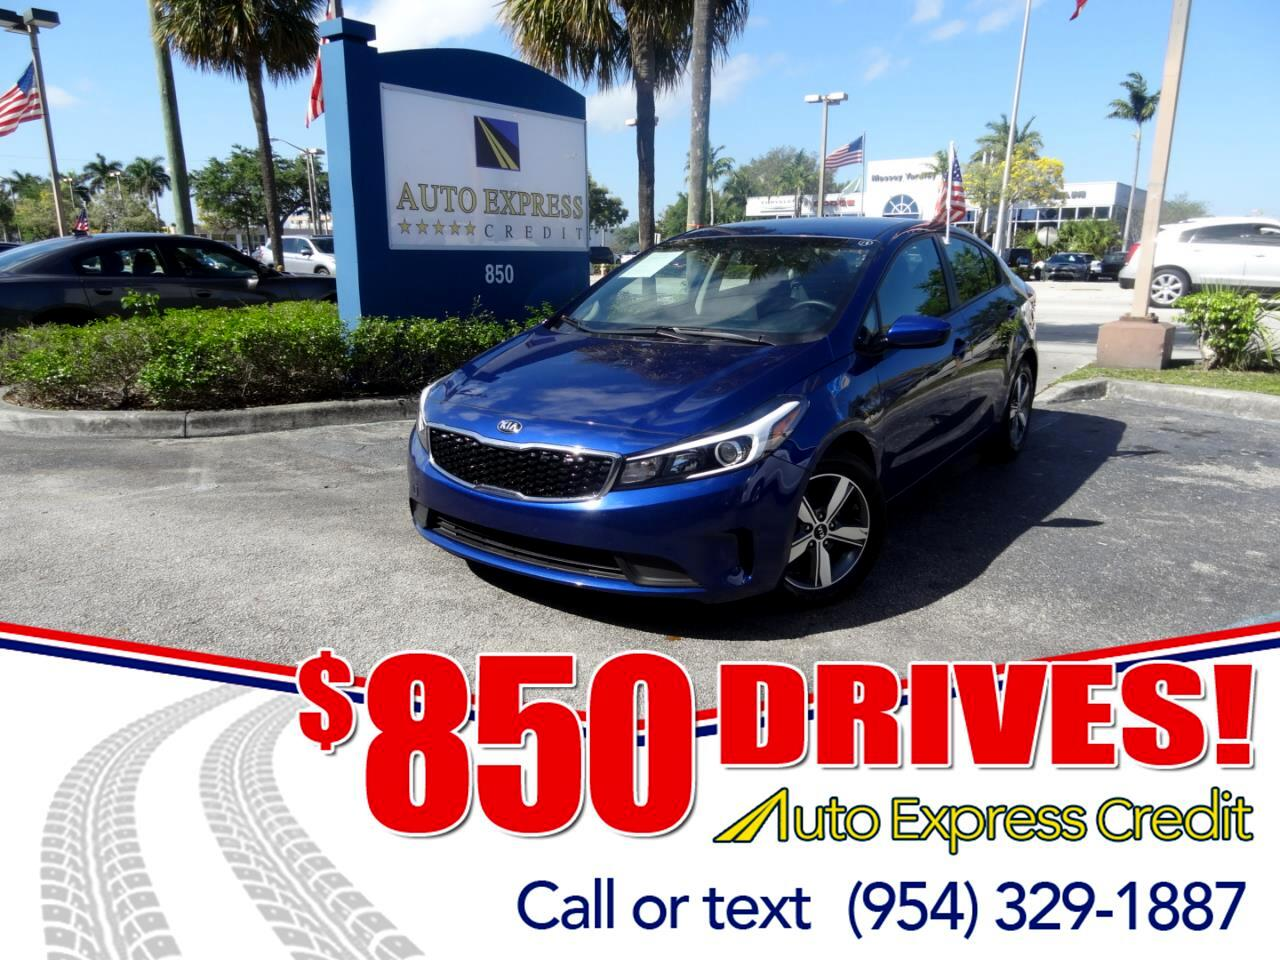 Used 2018 Kia Forte For Sale In Plantation FL 33317 Auto Express Credit